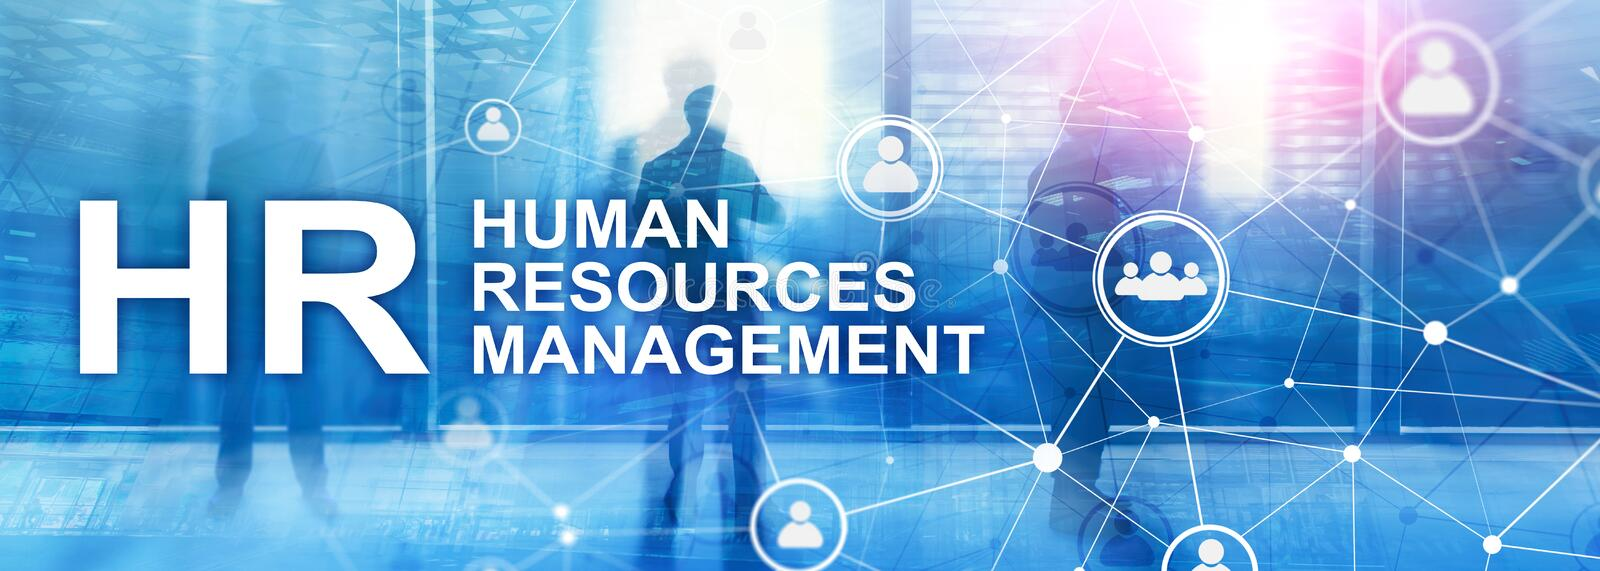 Human resource management, HR, Team Building and recruitment concept on blurred background stock photography